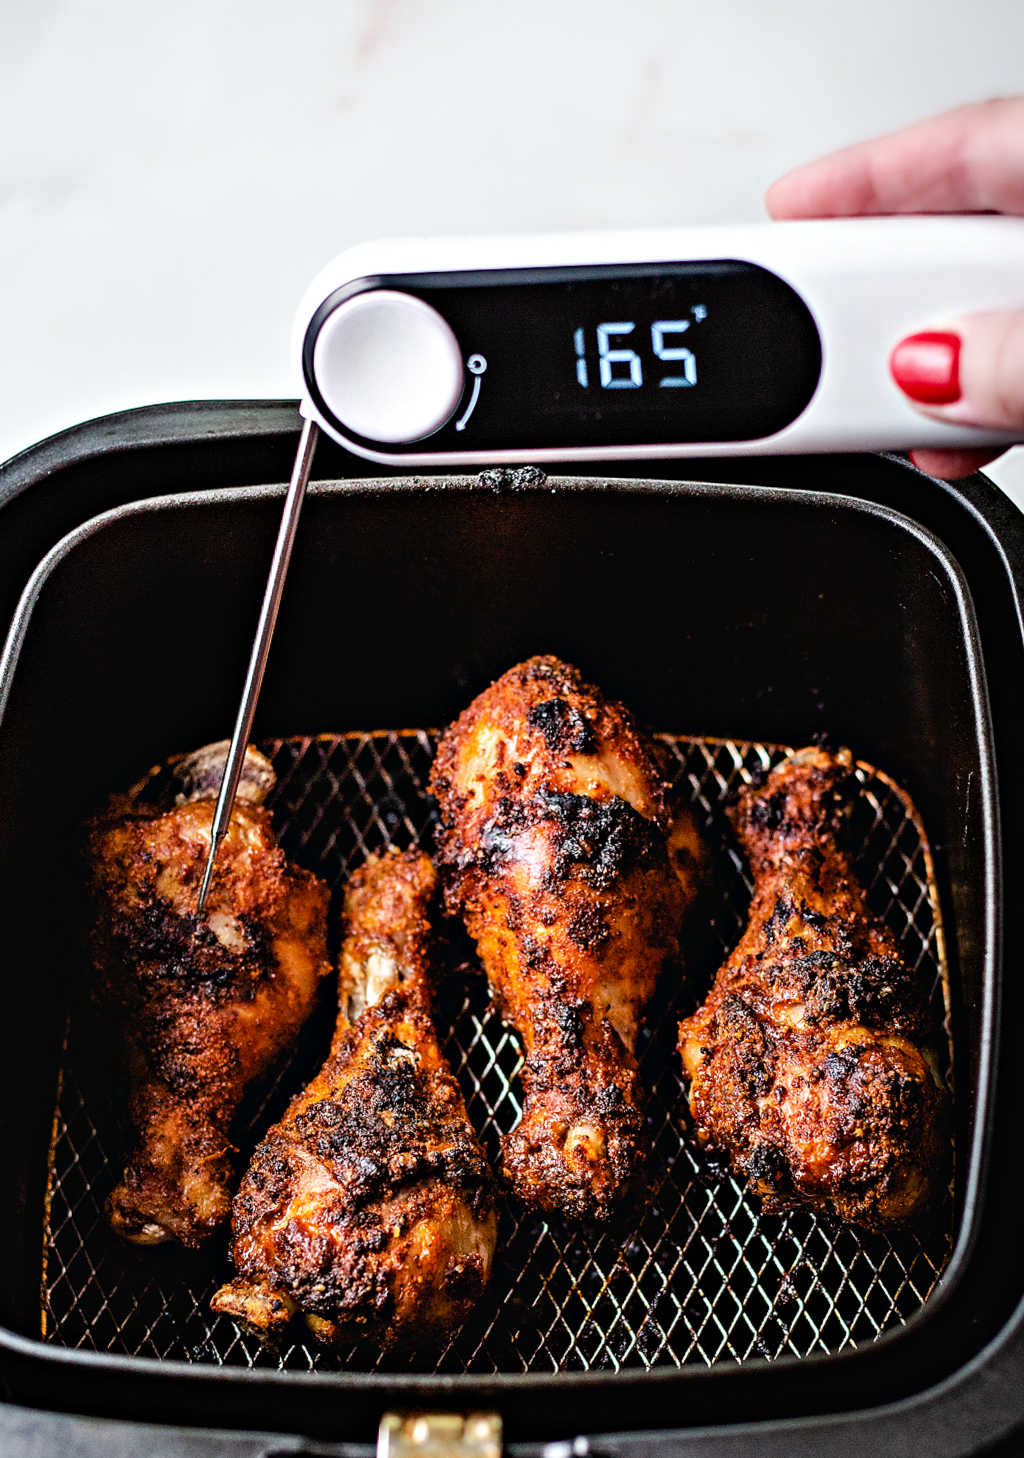 checking the internal temperature of air fryer chicken legs with an instant read digital thermometer.